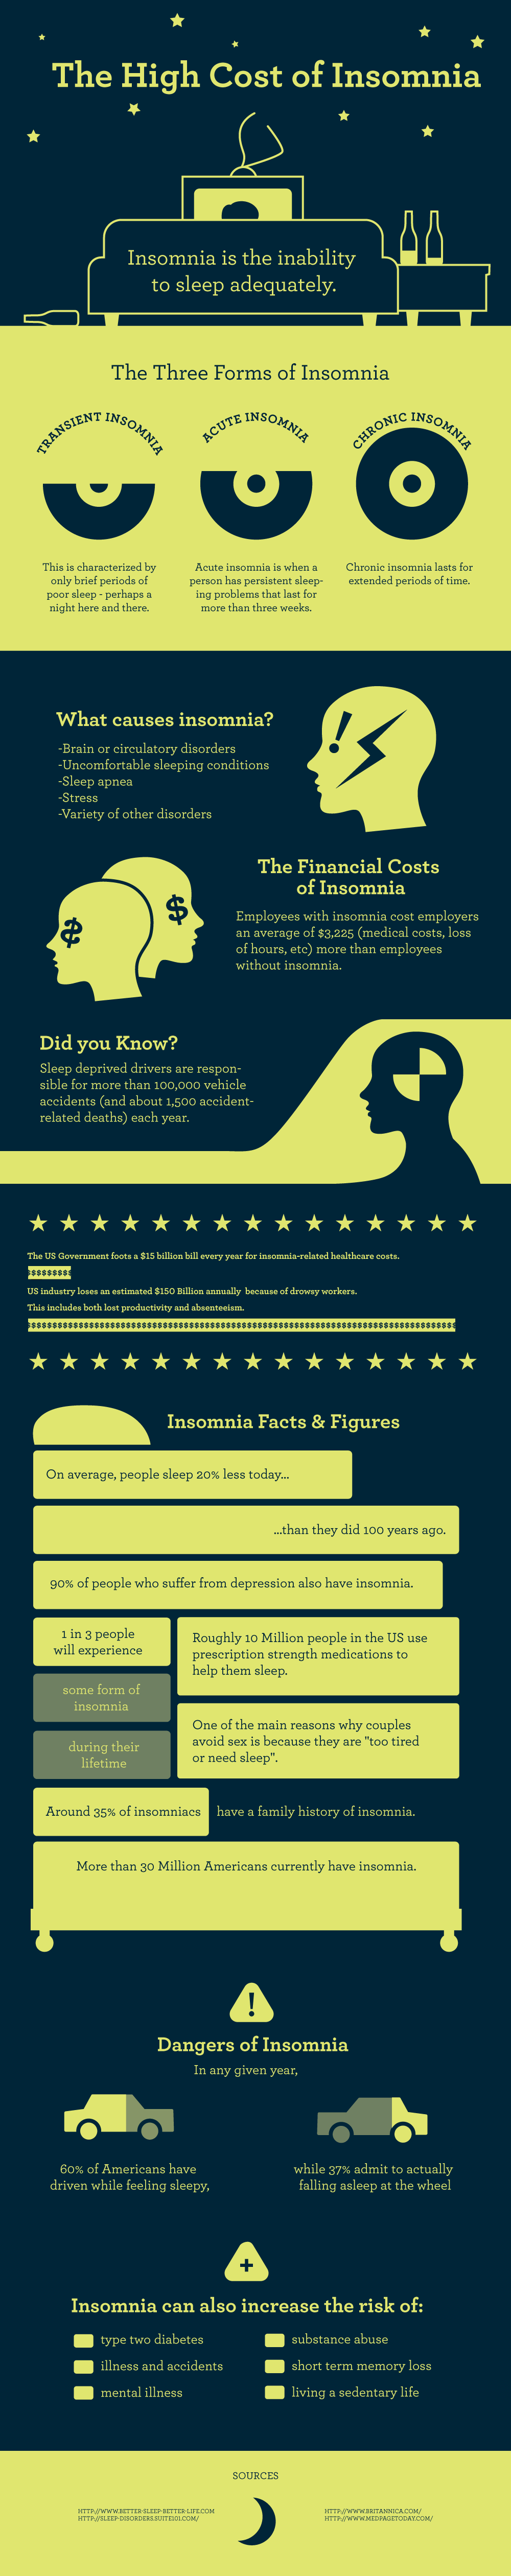 The High Cost of Insomnia